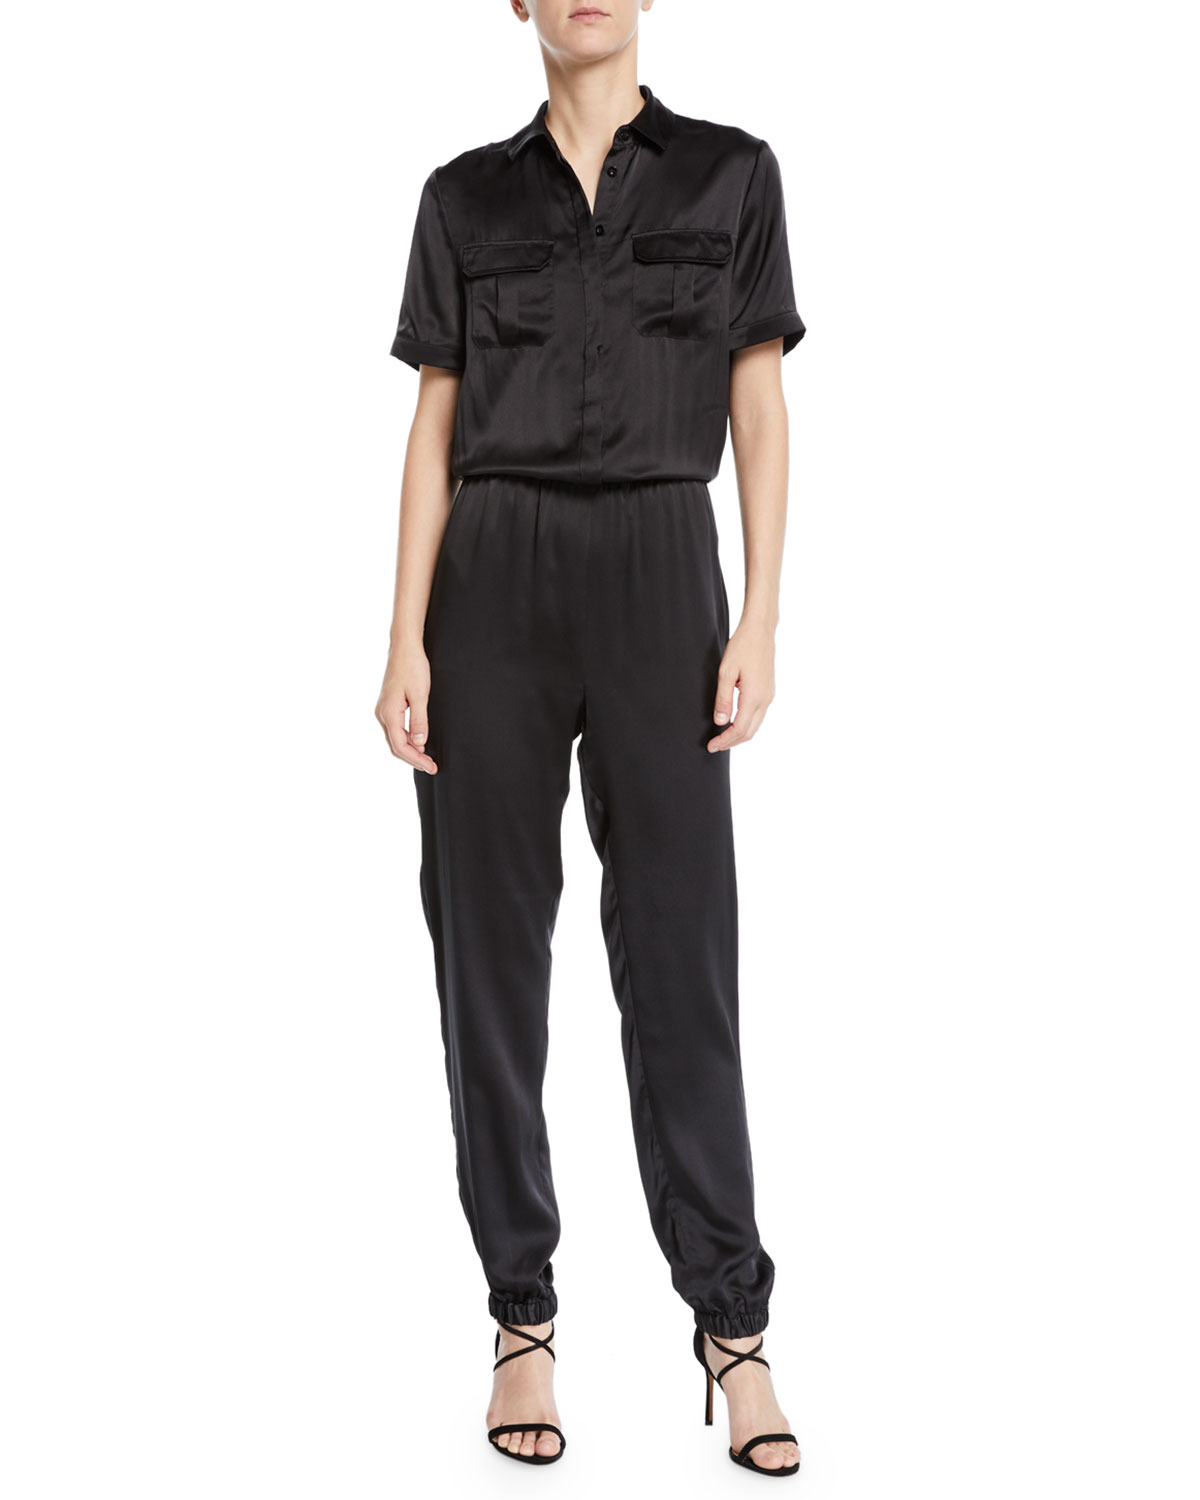 The Maddi Silk Charmeuse Button-Down Jumpsuit